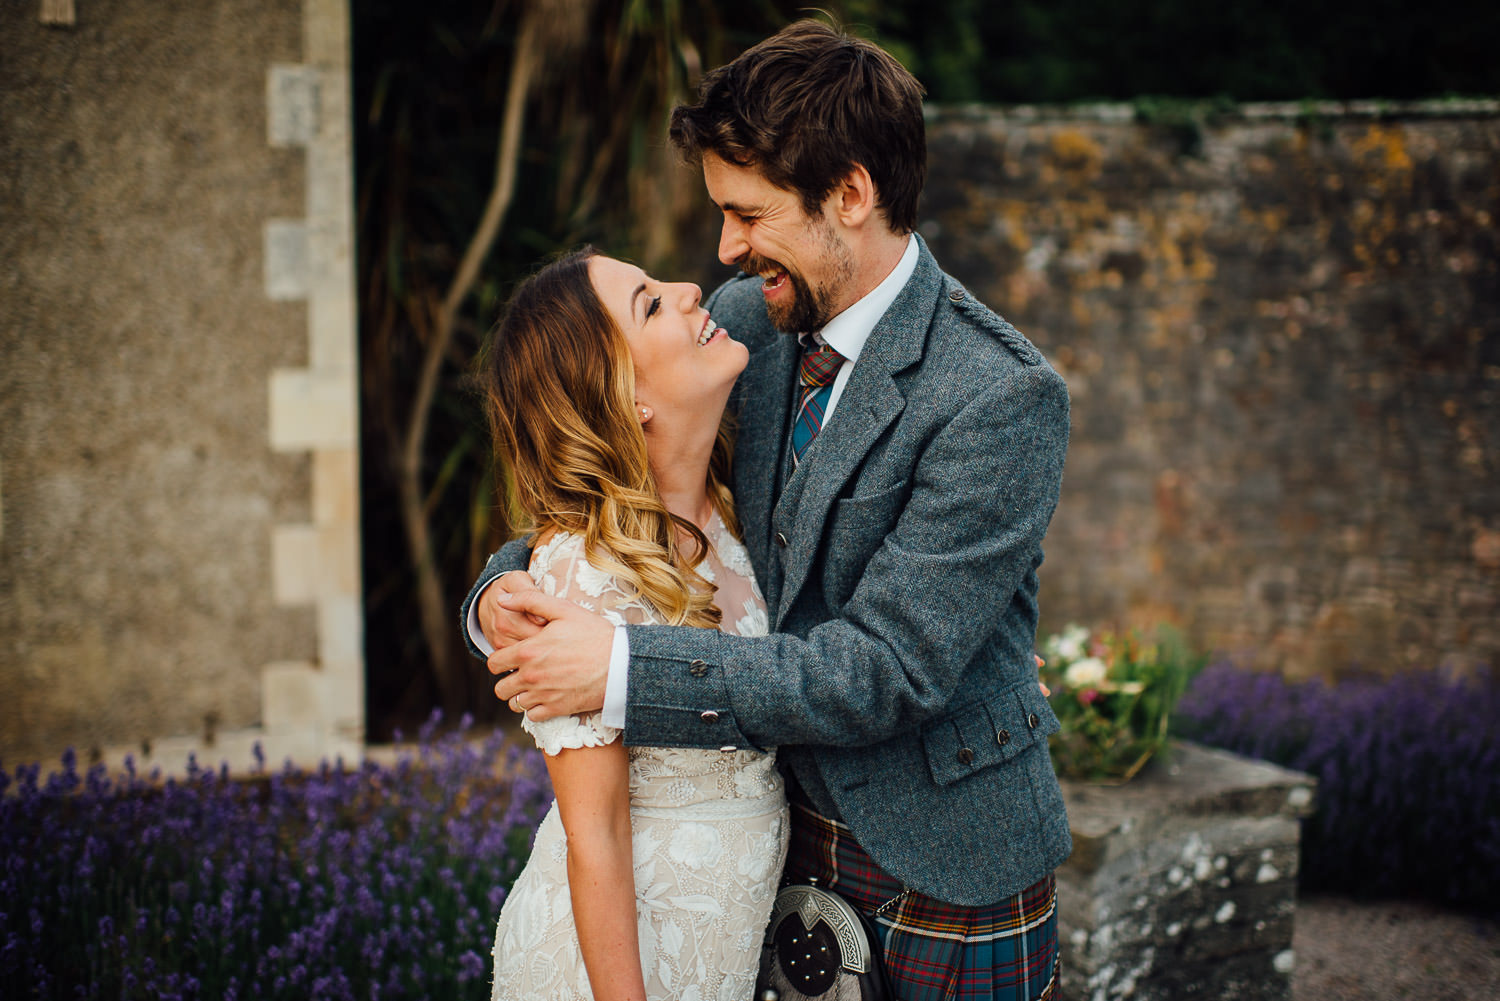 Couples portraits in Barley Wood House Bristol Wedding by bristol wedding photographer the shannons photography